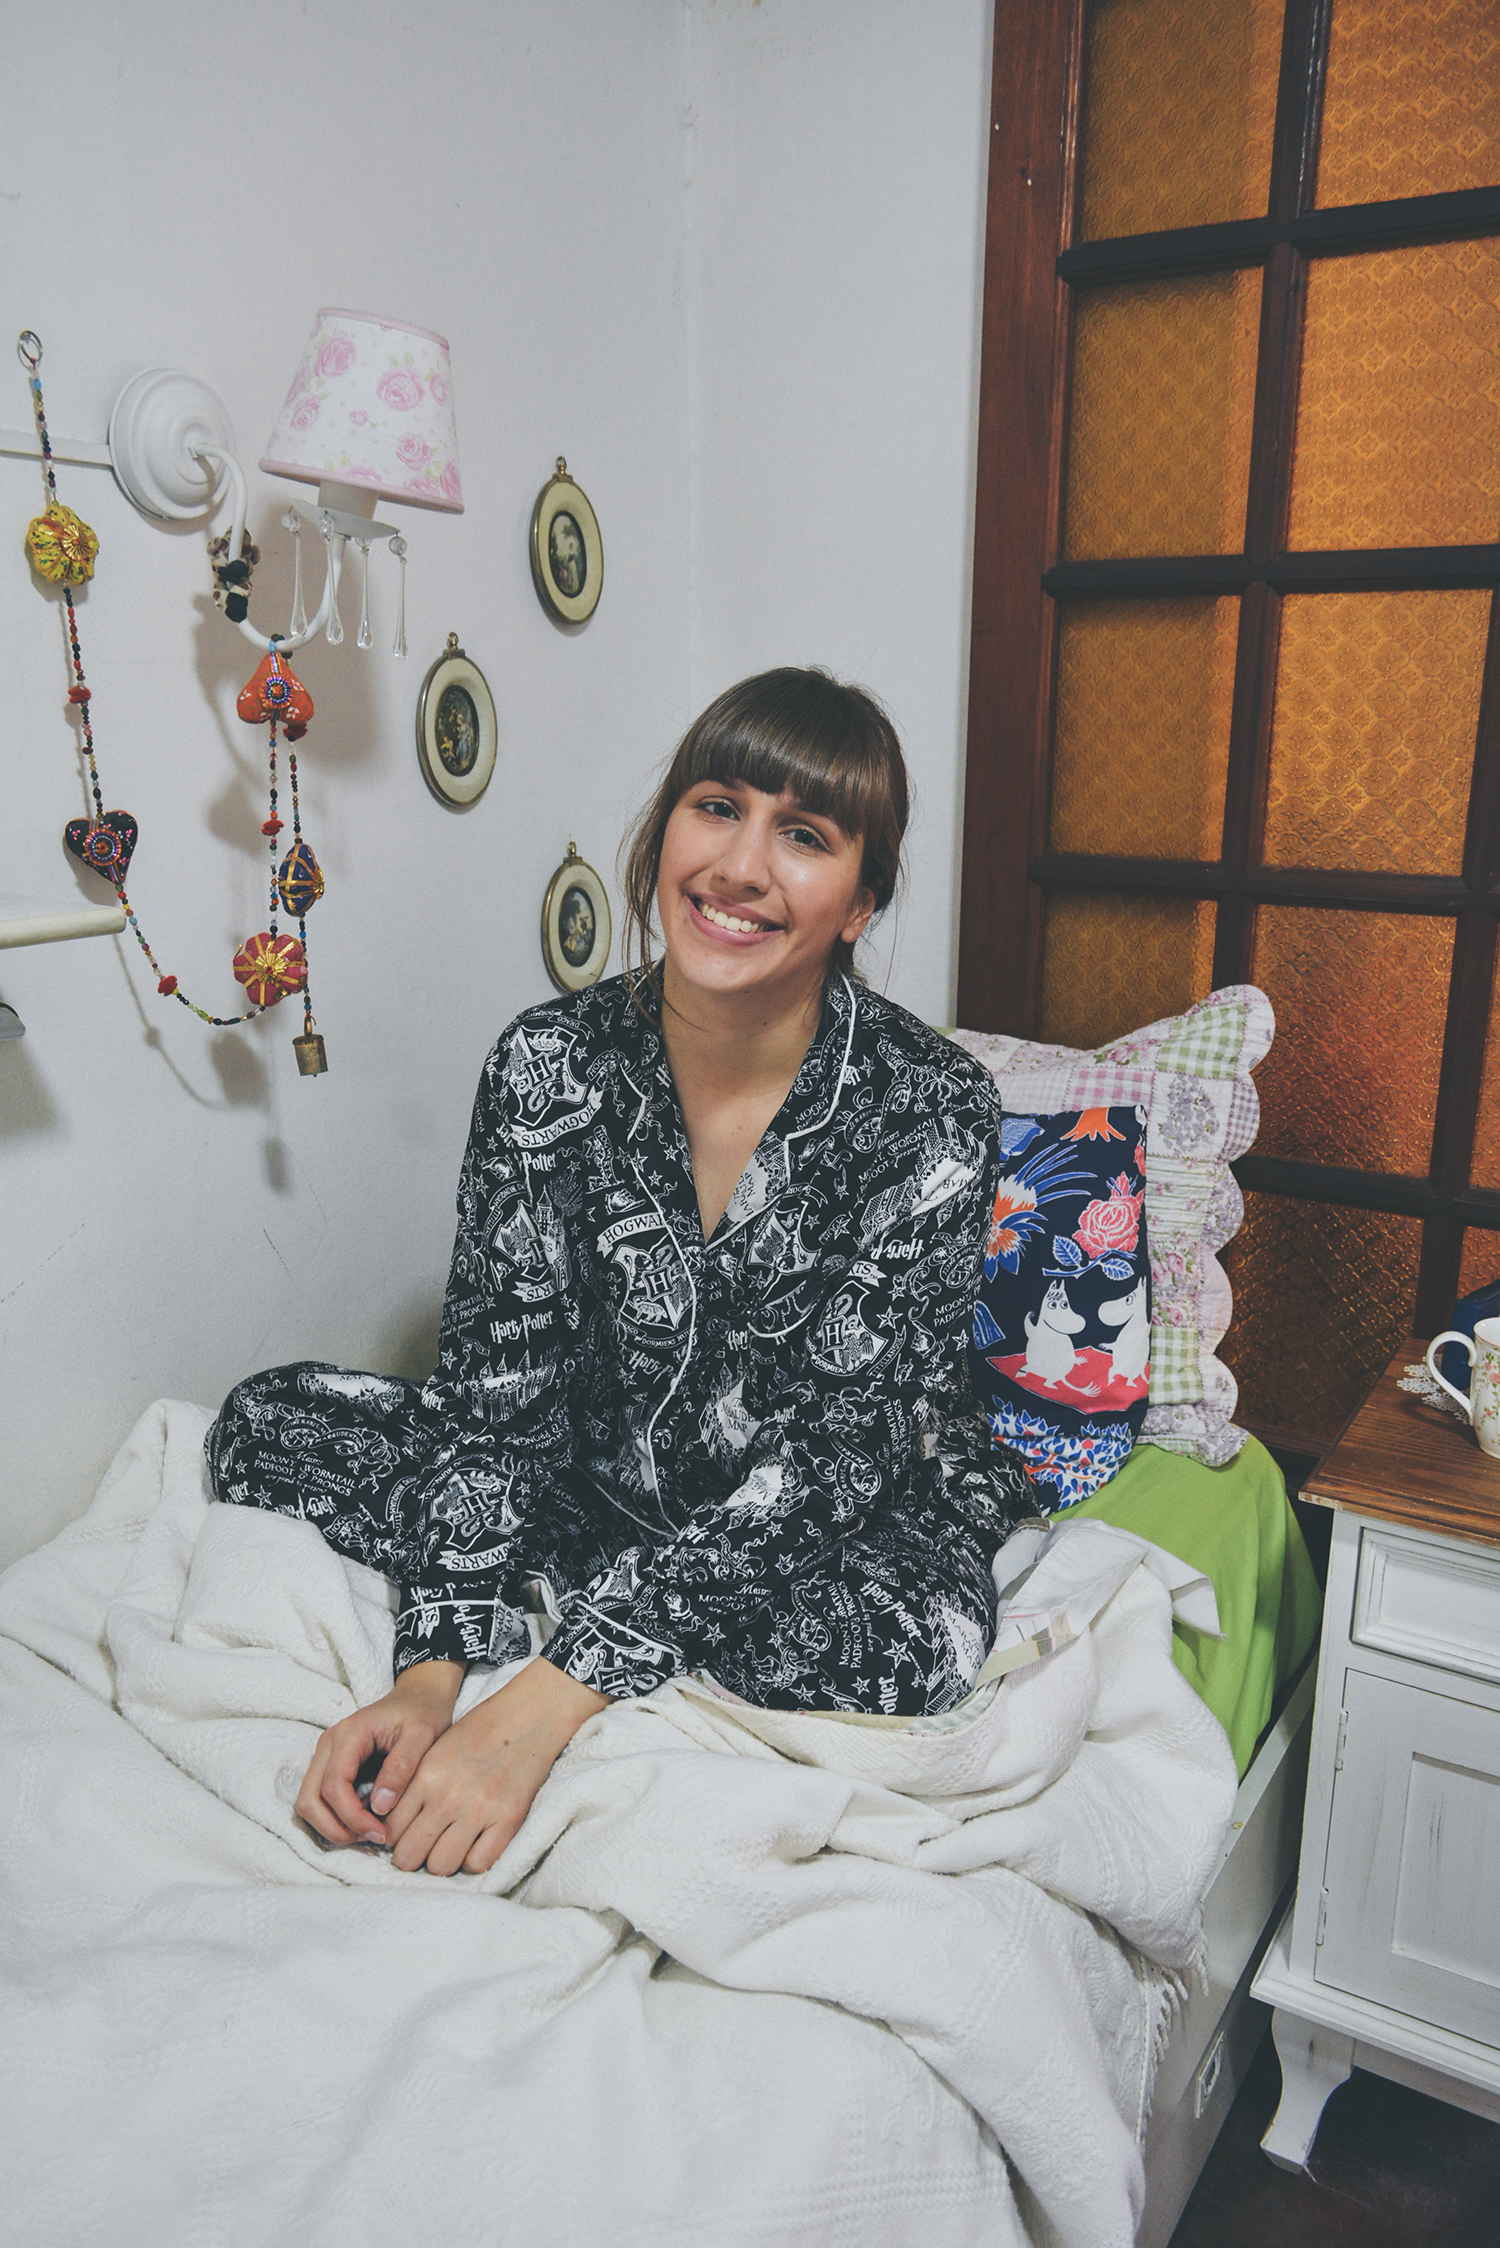 fashion, fashionista, moda, blogger argentina, fashion blogger, fashion blogger argentina, blogger, lifestyle blogger, thoughts, ootd, outfit, style, look, outfit of the day, lookbook, what i wore, pj, pajama, nightwear, nightgown, pijama, cozy at home